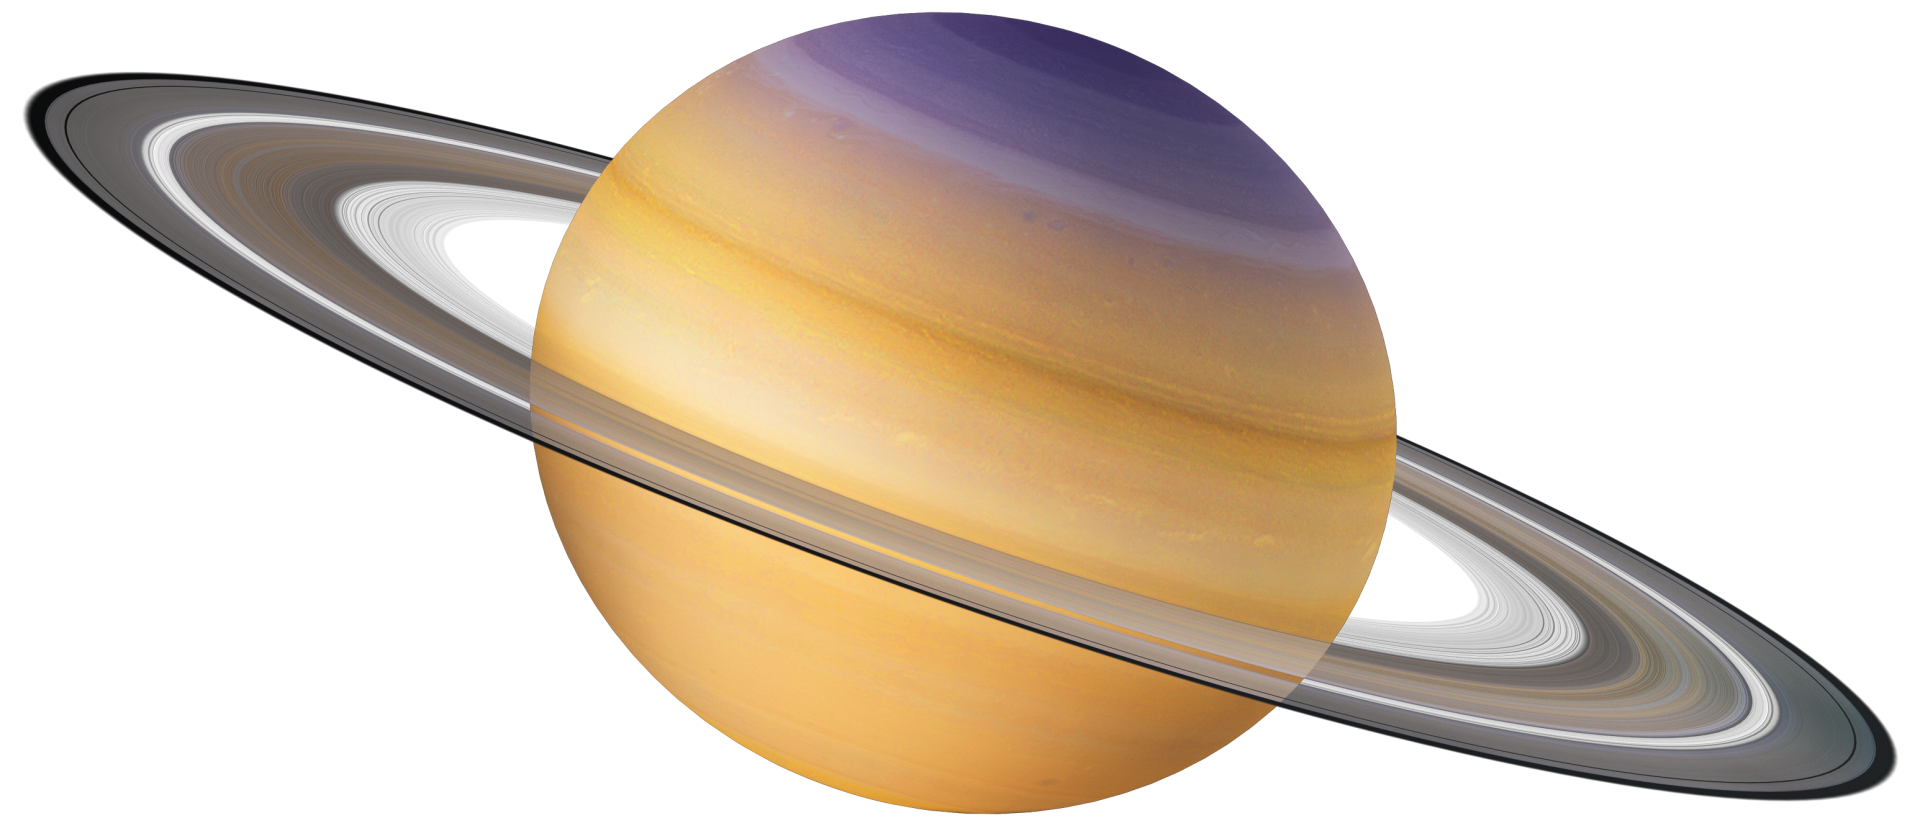 Saturn facts for kids saturn planet facts dk find out aw 187527 outerplanets saturn doegjg altavistaventures Images